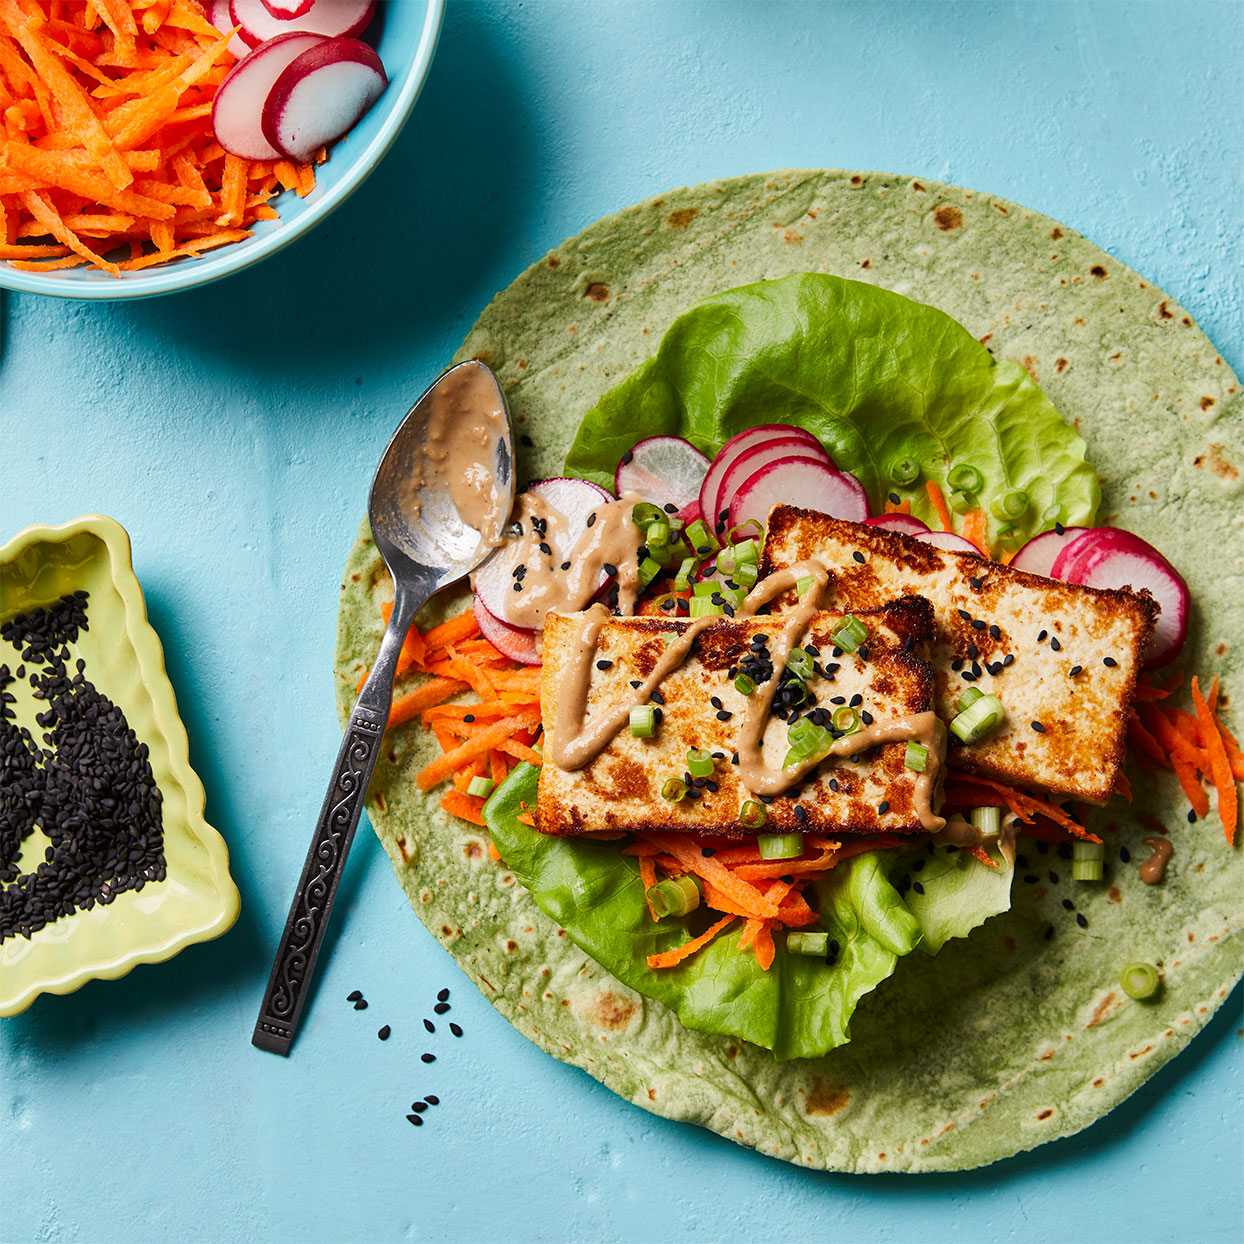 A tangy tahini-ginger-soy mixture both marinates the tofu and serves as a sauce for this colorful veggie wrap recipe. Look for spinach tortillas for an additional pop of green. Source: Diabetic Living Magazine, Spring 2020